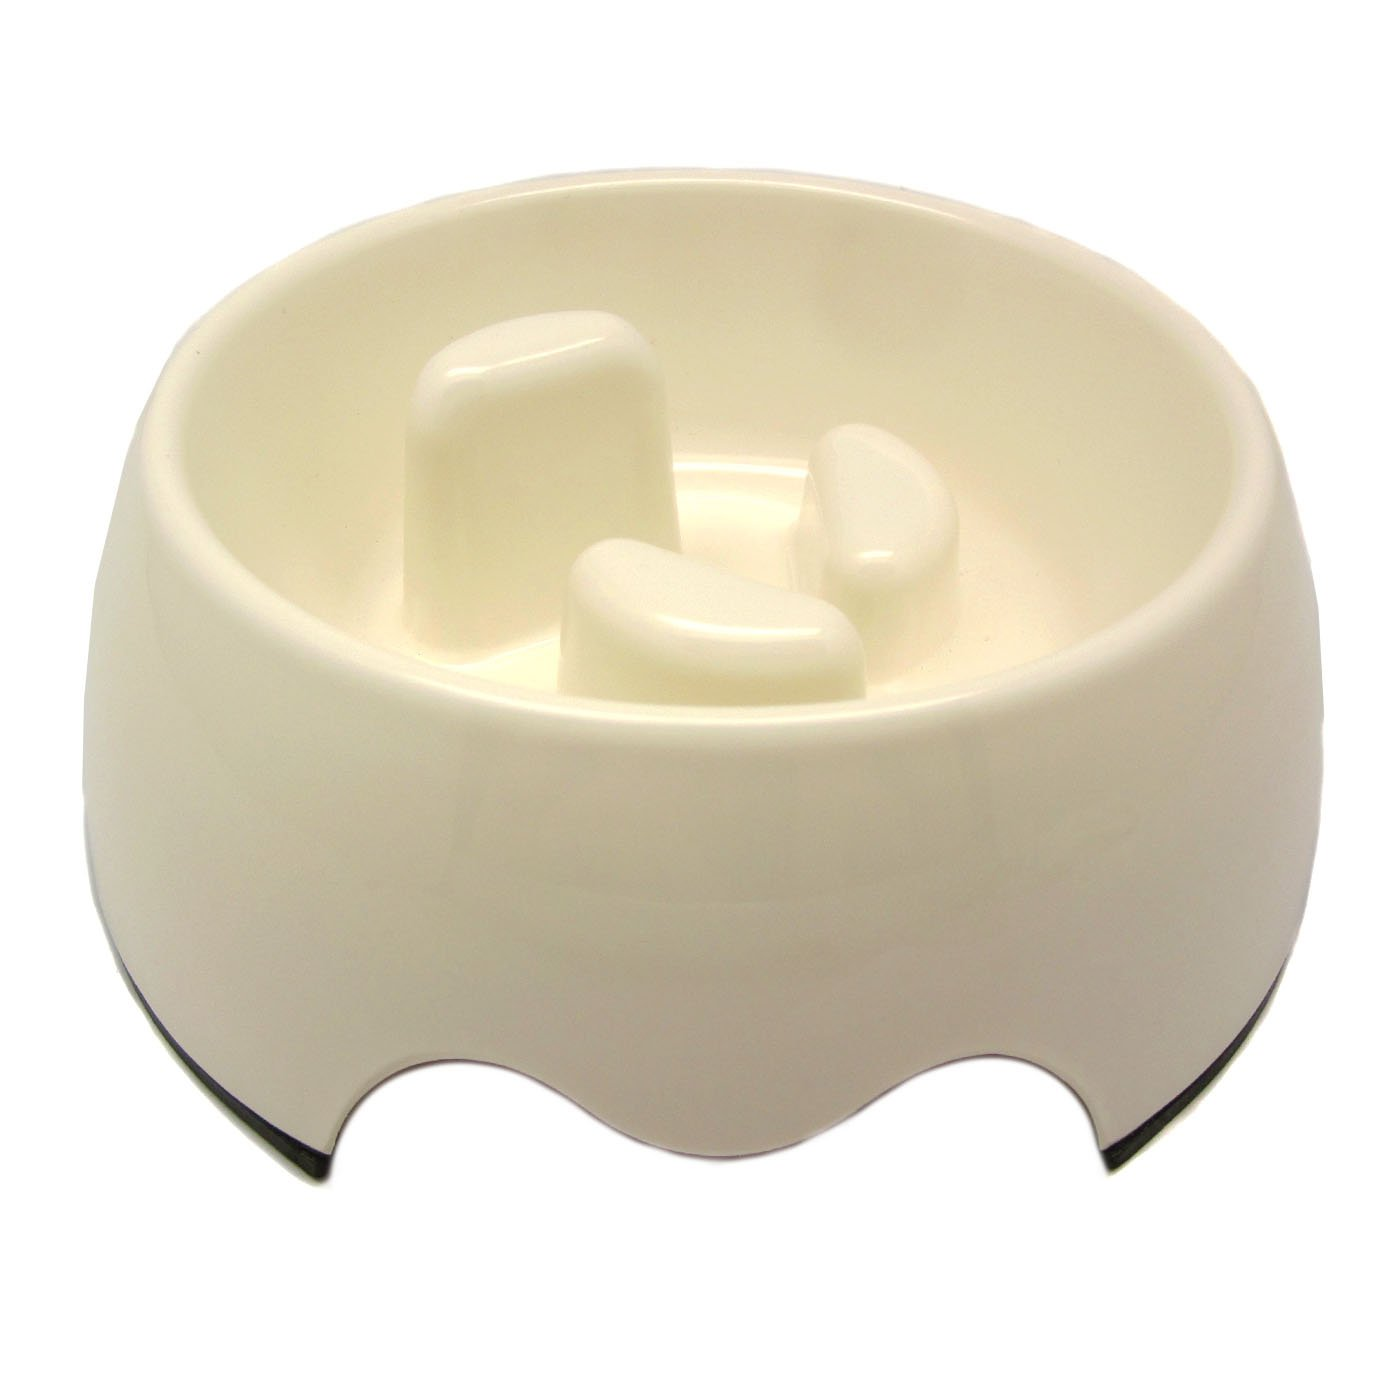 Alfie Pet by Petoga Couture - Vea 2.0 Slow-Eating Anti-Gulping Pet Food Bowl (for Dogs & Cats) - Color: White, Size: Small